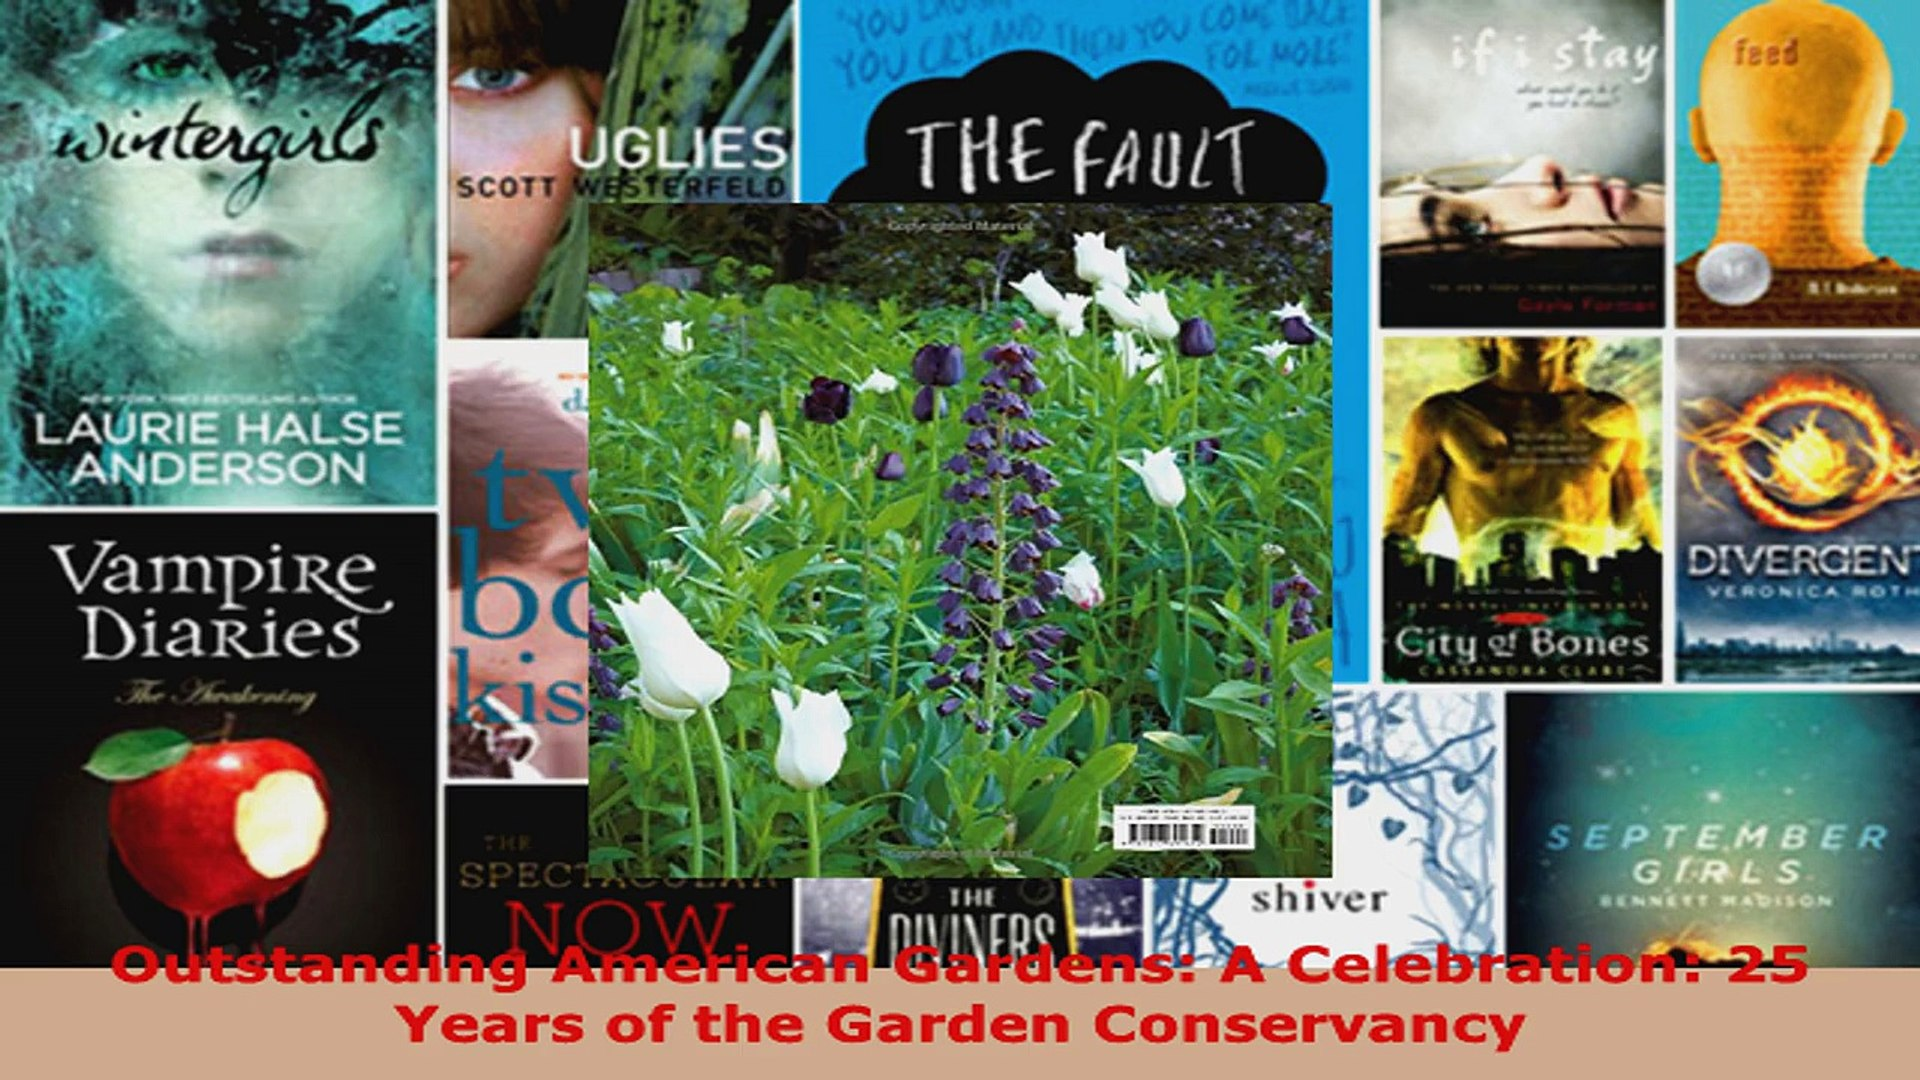 Read  Outstanding American Gardens A Celebration 25 Years of the Garden Conservancy Ebook Free